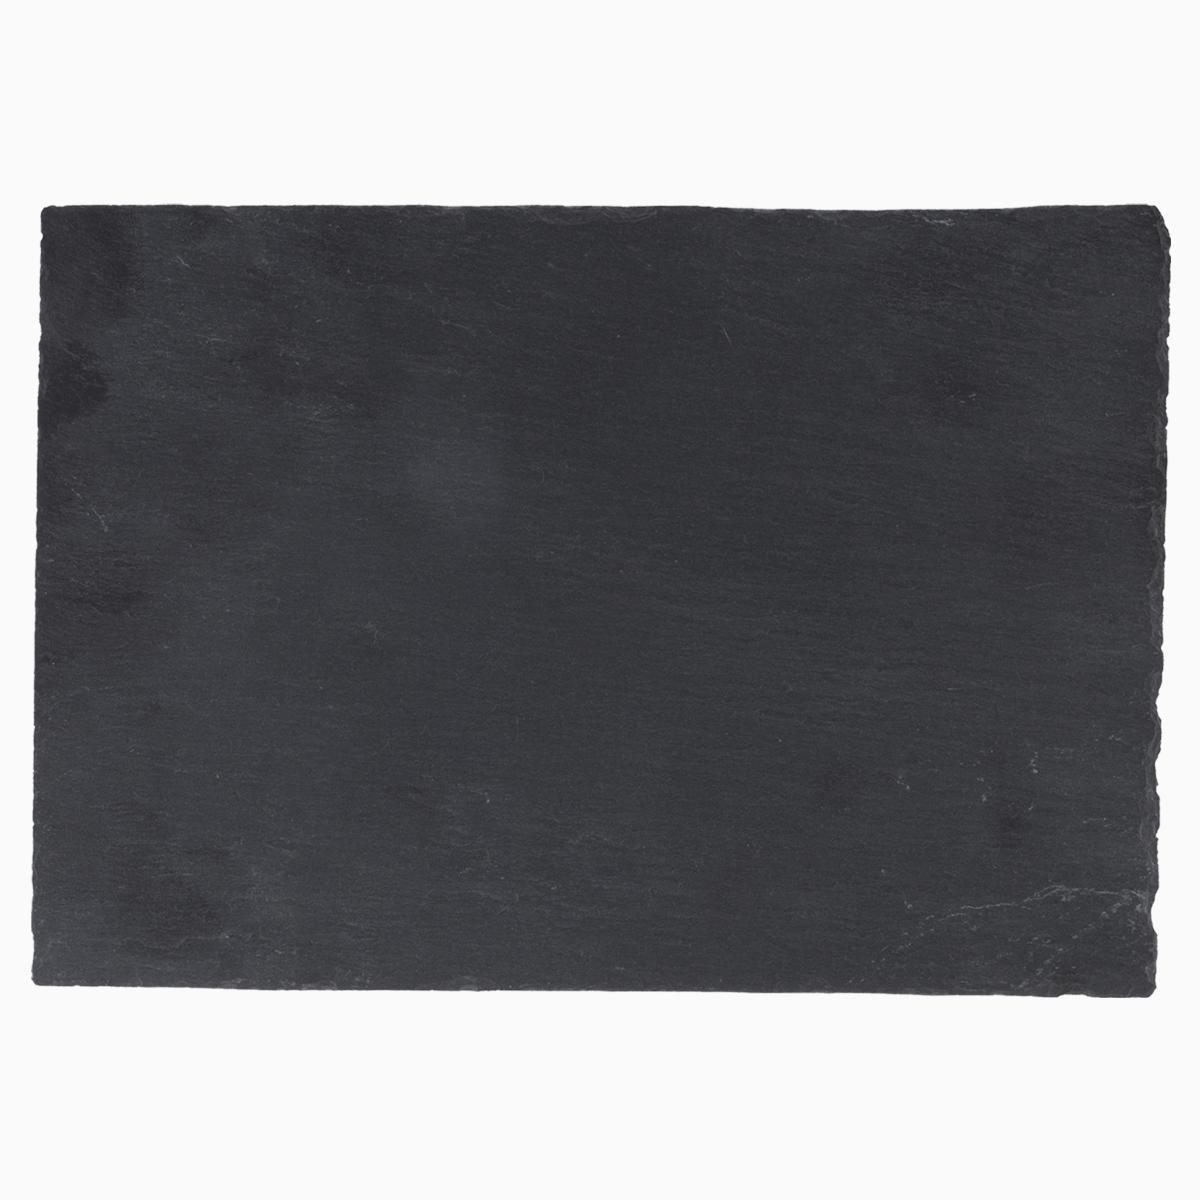 Slate Tray Rectangular